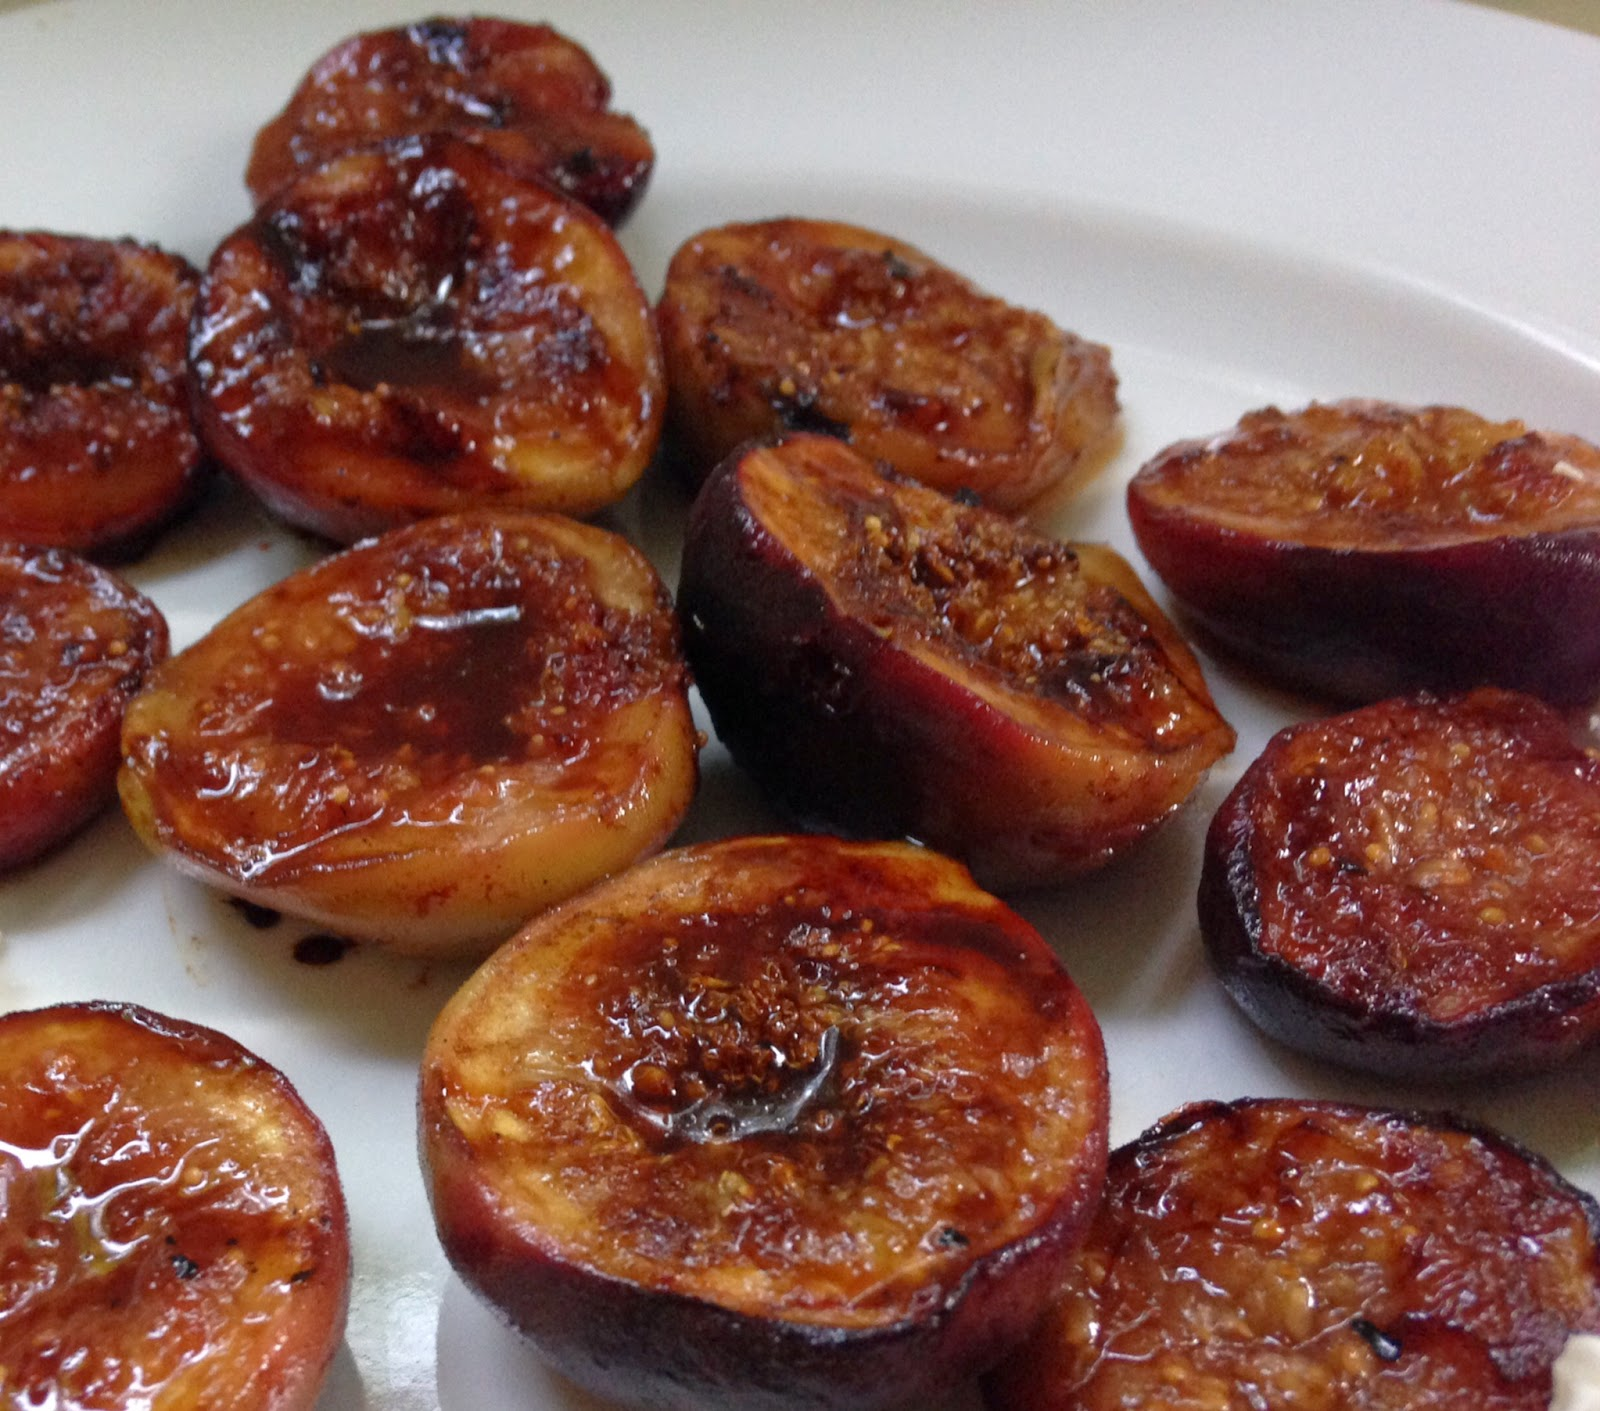 KnitOne,PearlOnion: Grilled Figs With Pomegranate Molasses